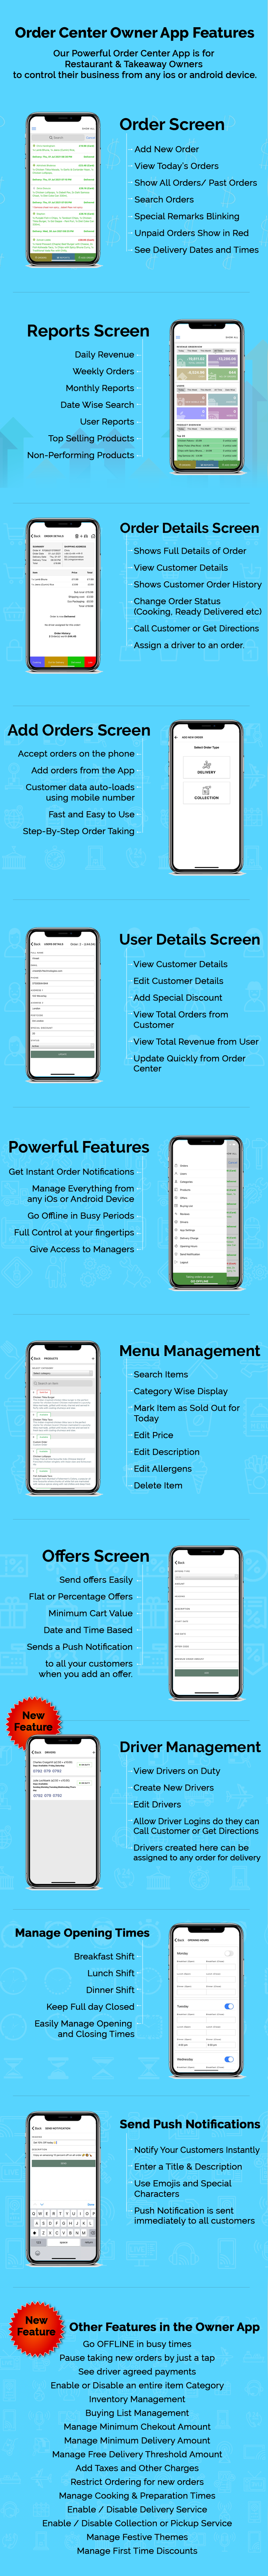 Best Takeaway Restaurant Online Food Ordering Delivery System - iOs Android Kitchen Onwer Web Admin - 10